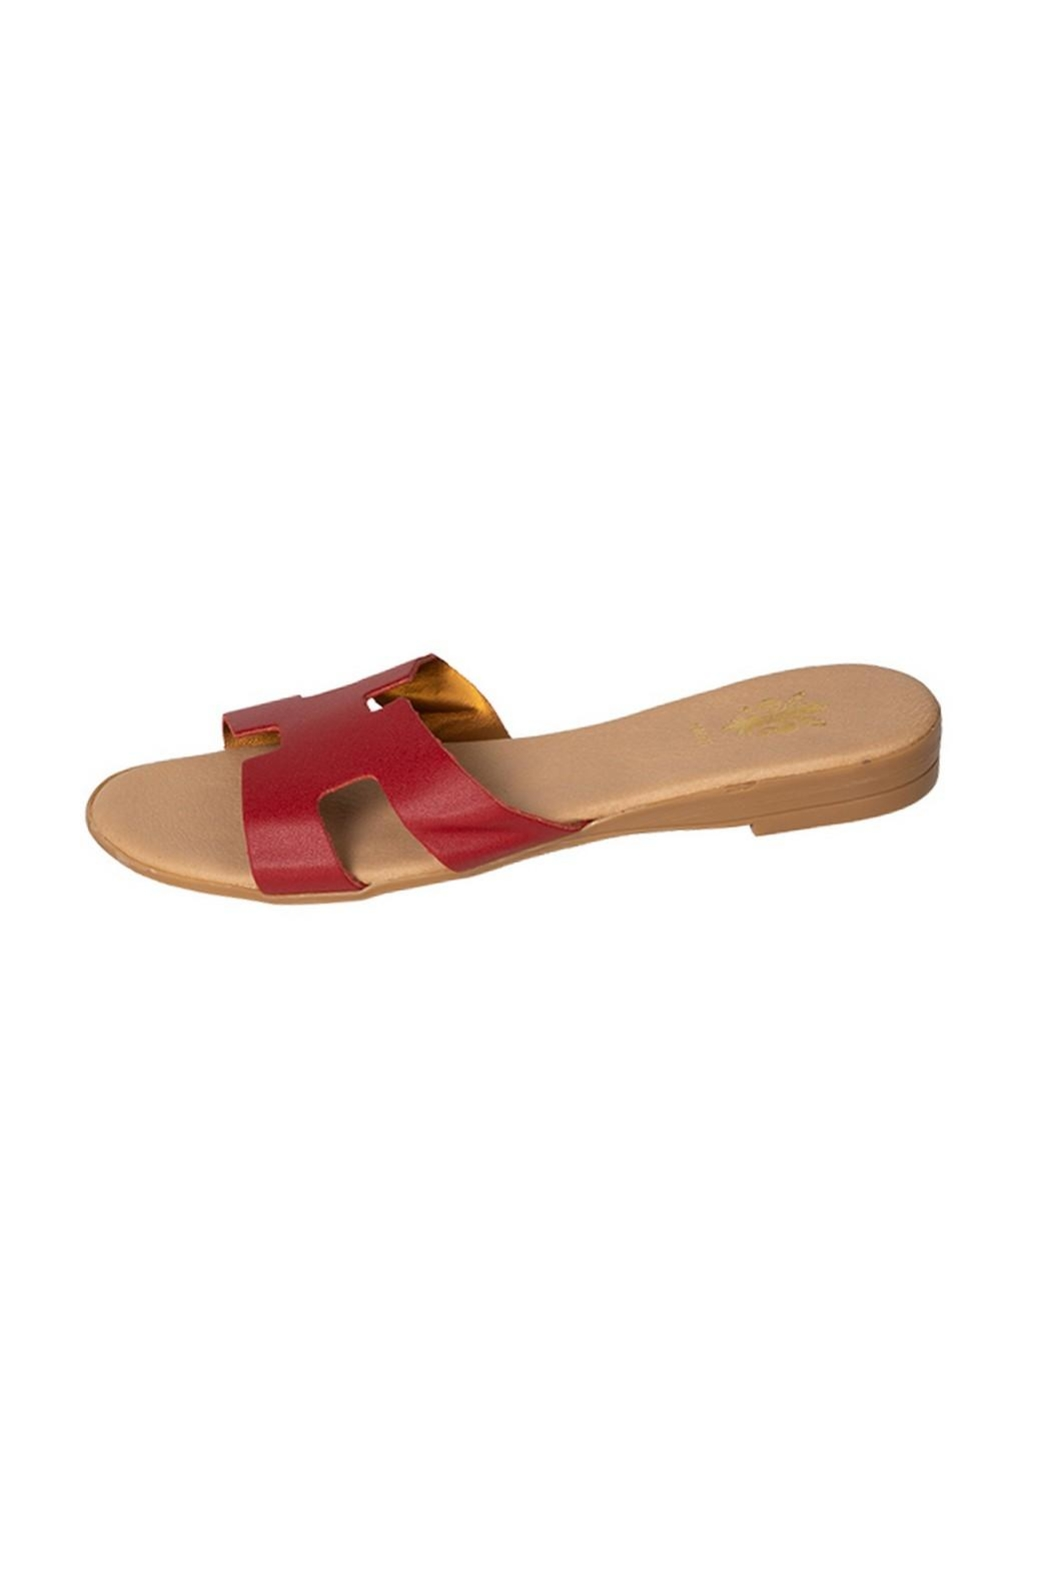 Firenze Red Leather H-Slides - Main Image